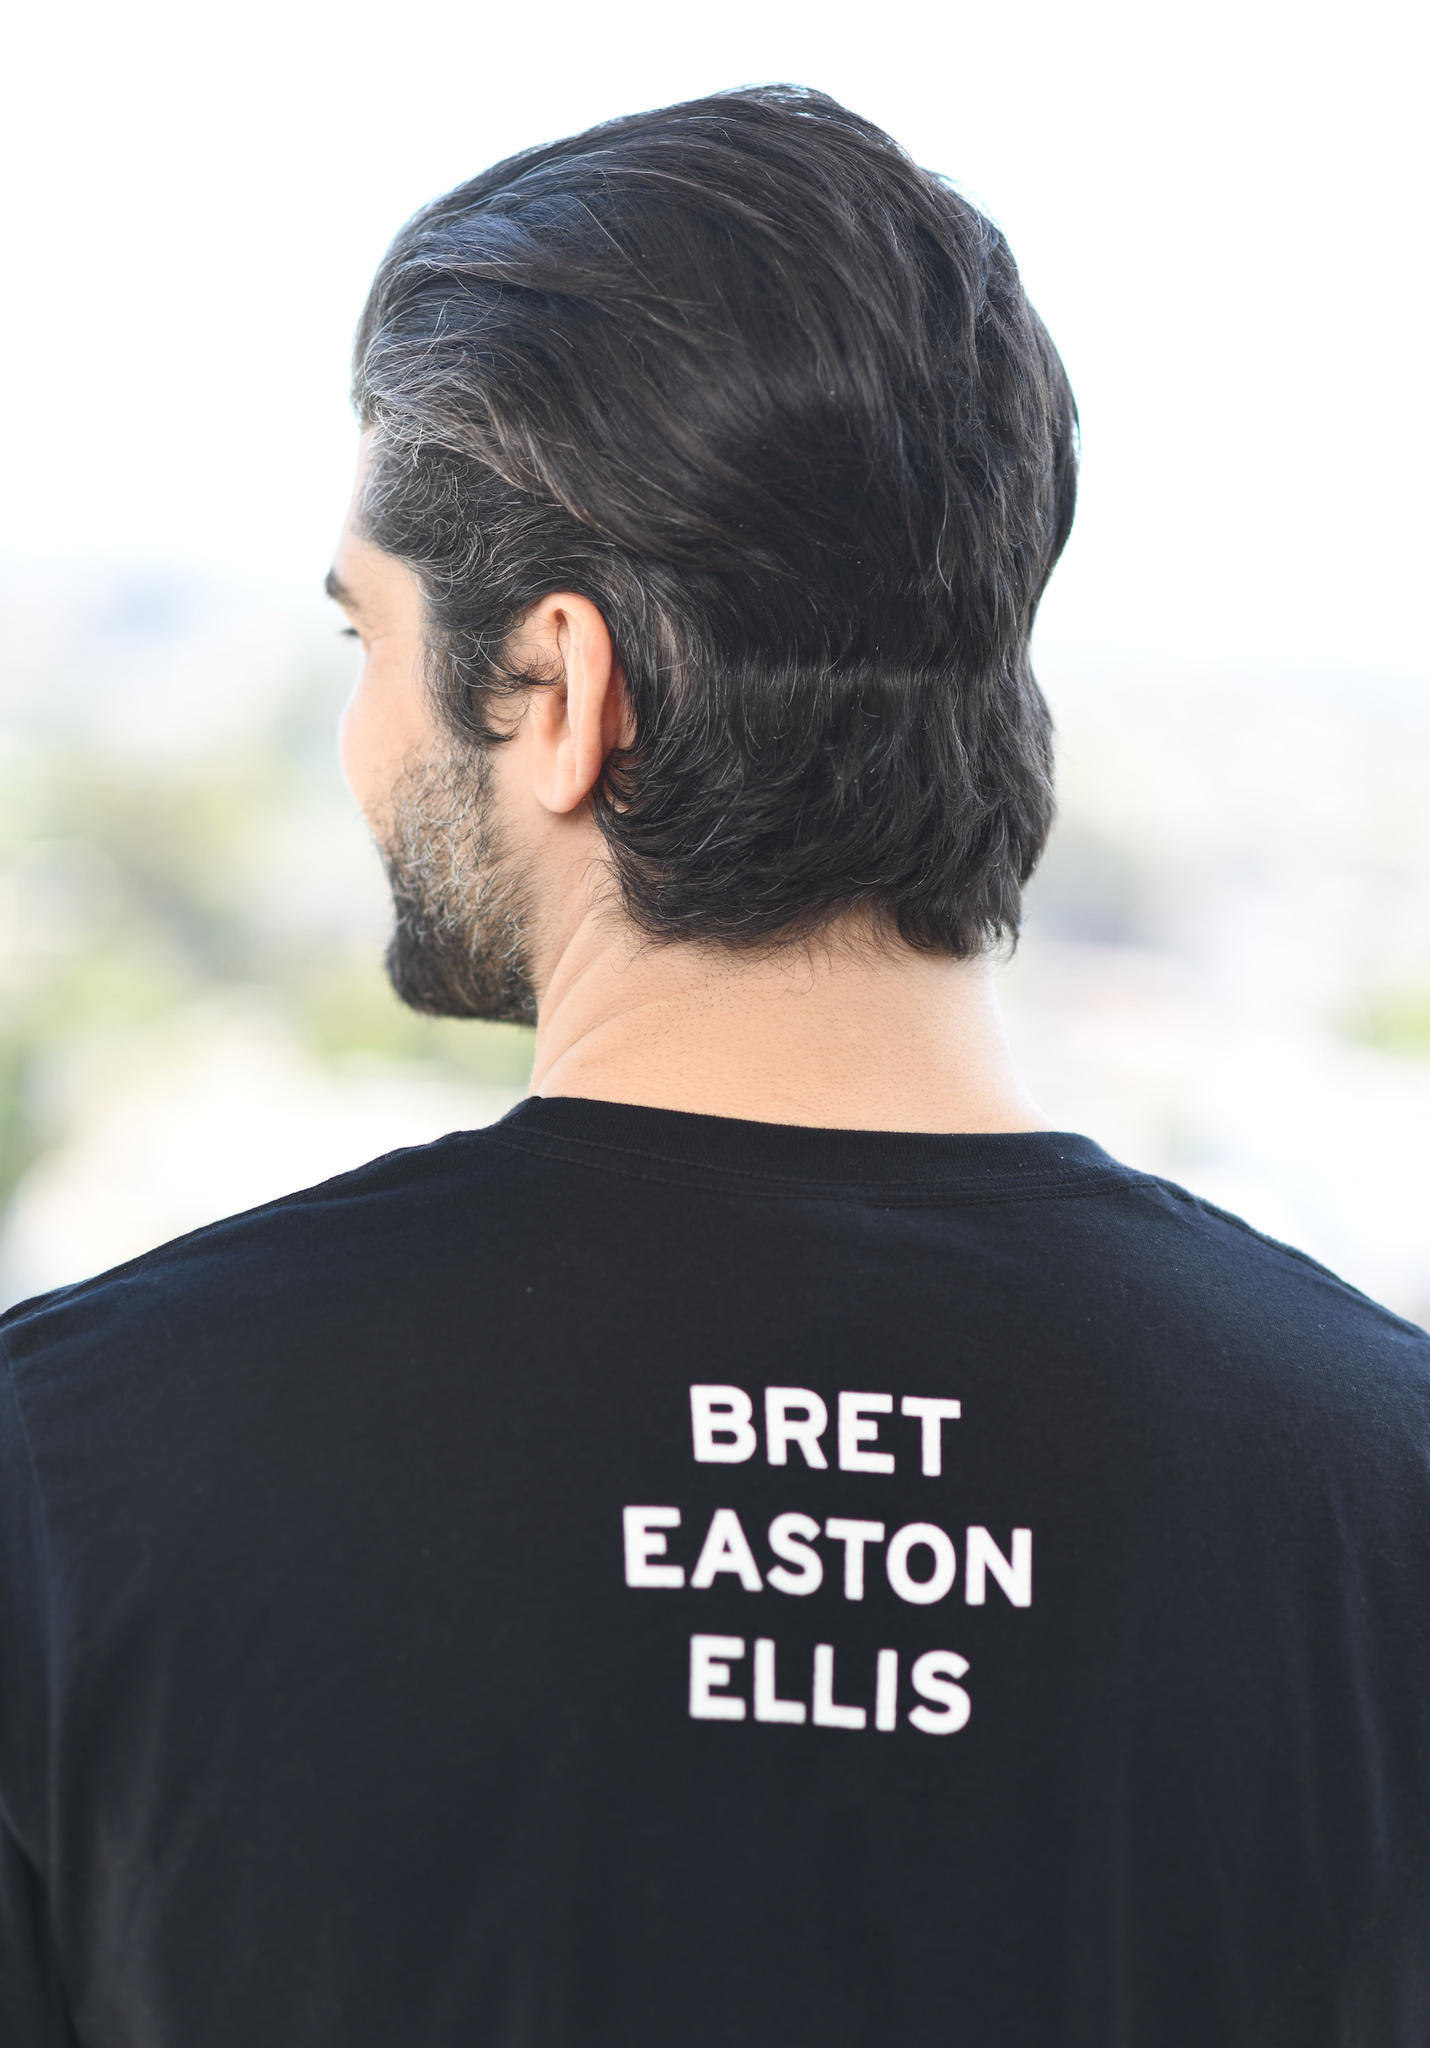 "BRET EASTON ELLIS ""THIS IS NOT AN EXIT"" T-SHIRT"